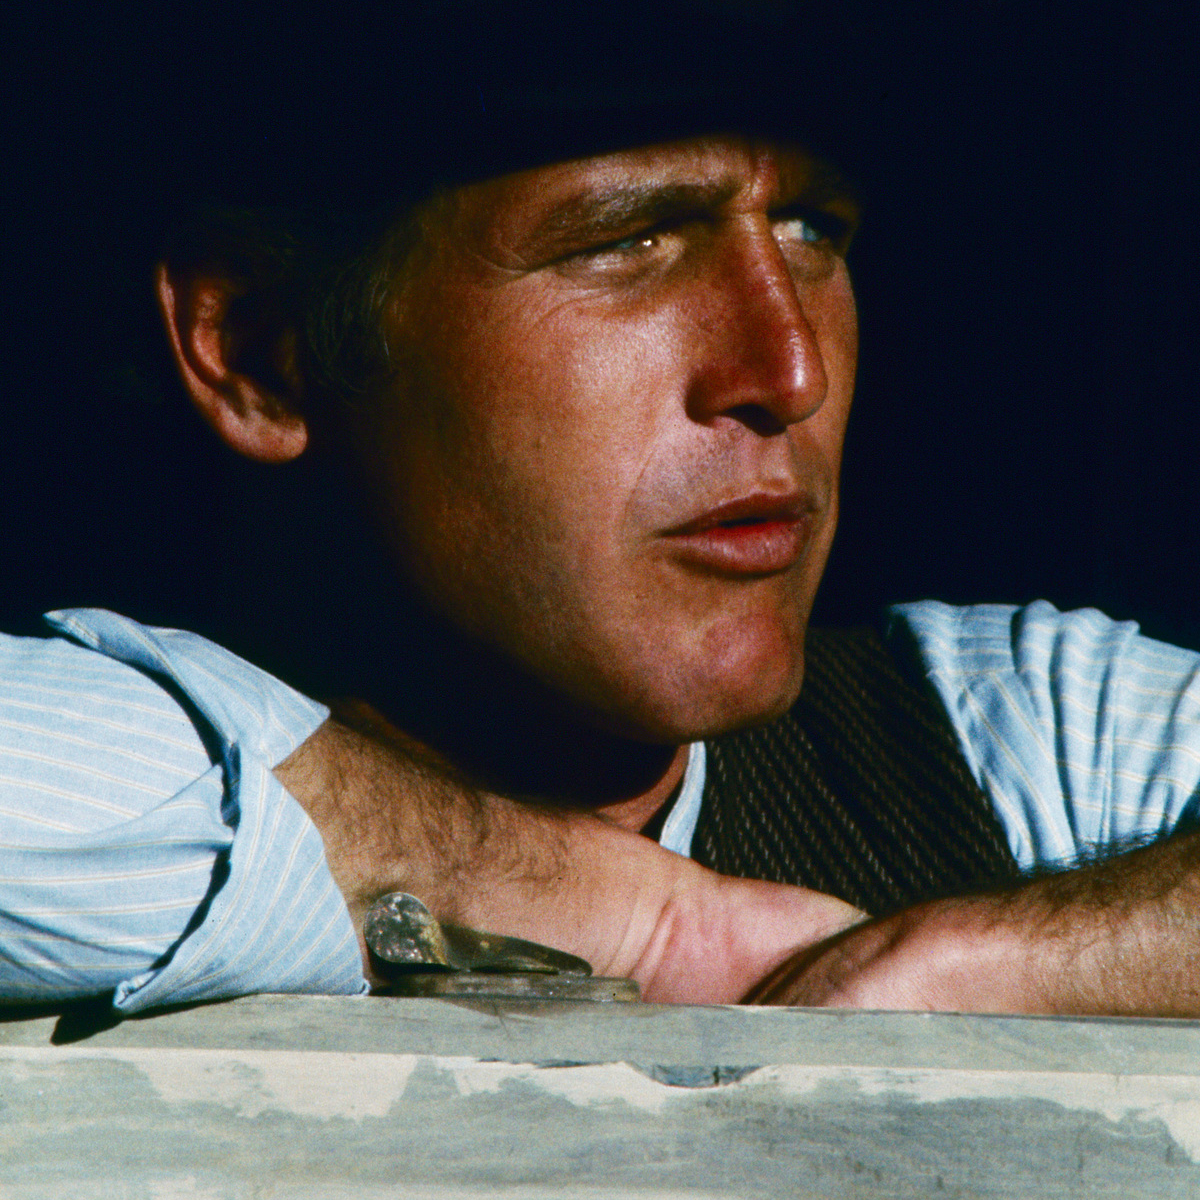 Close-up of American actor Paul Newman (1925 - 2008) (as Butch Cassidy) in a scene from 'Butch Cassidy and the Sundance Kid' (directed by George Roy Hill), 1968.